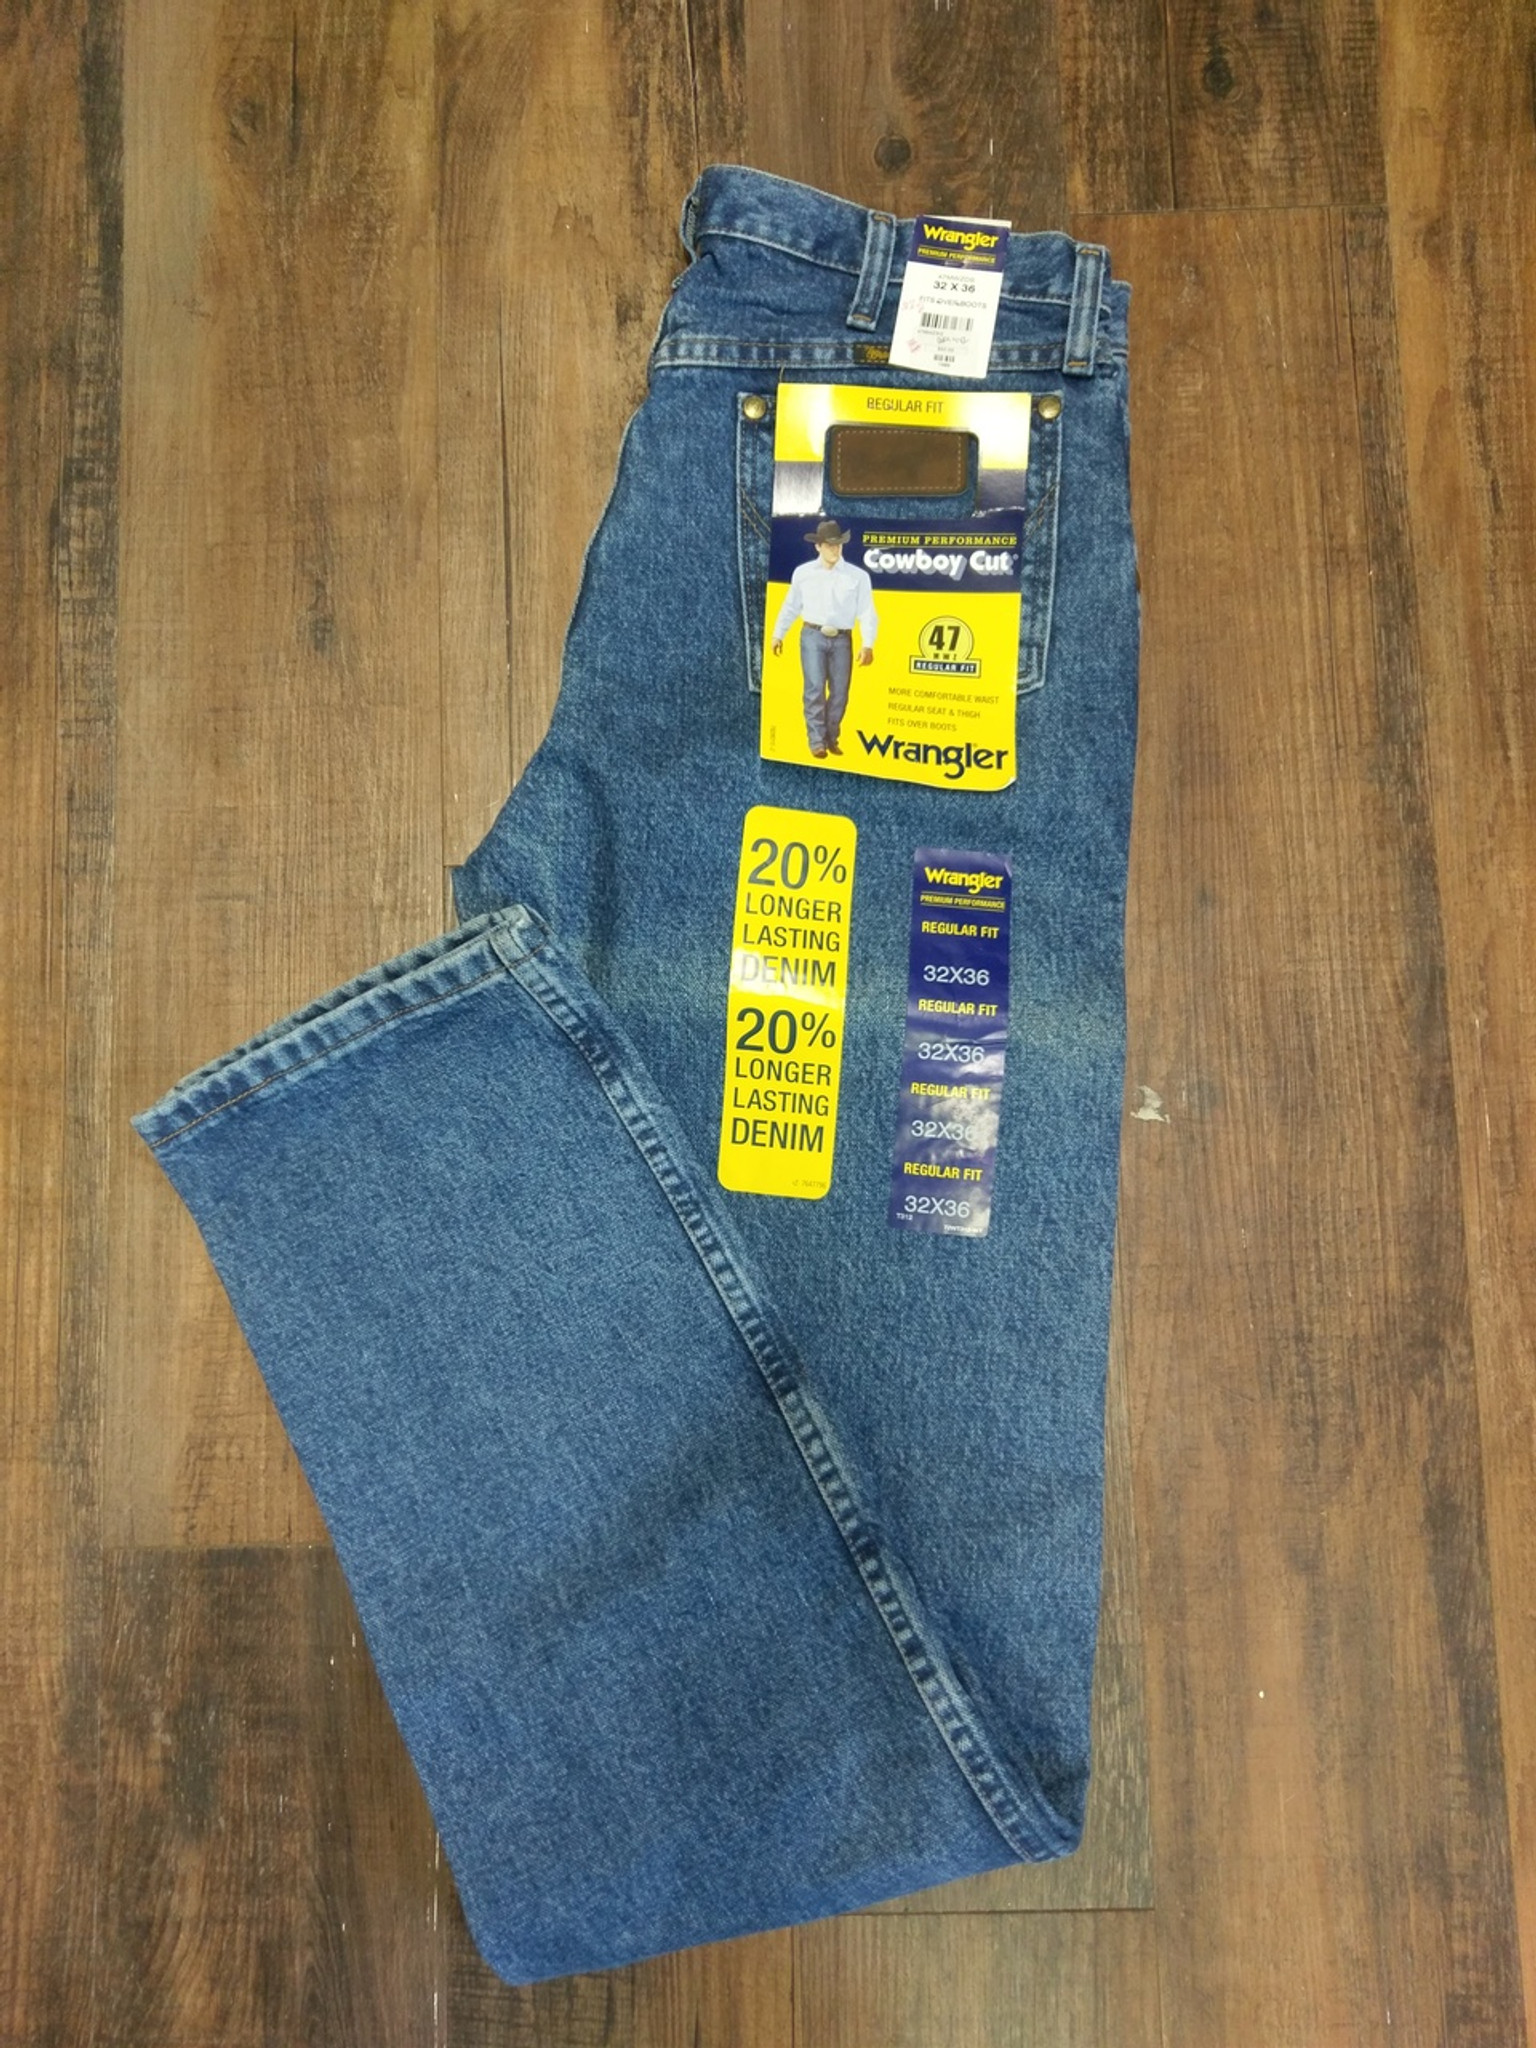 1d812955 Wrangler Mens Jeans Dark Stone Regular Fit 47MWZDS, NEW, various sizes, 30%  off new retail! - Hitchin' Post Trailers, LLC